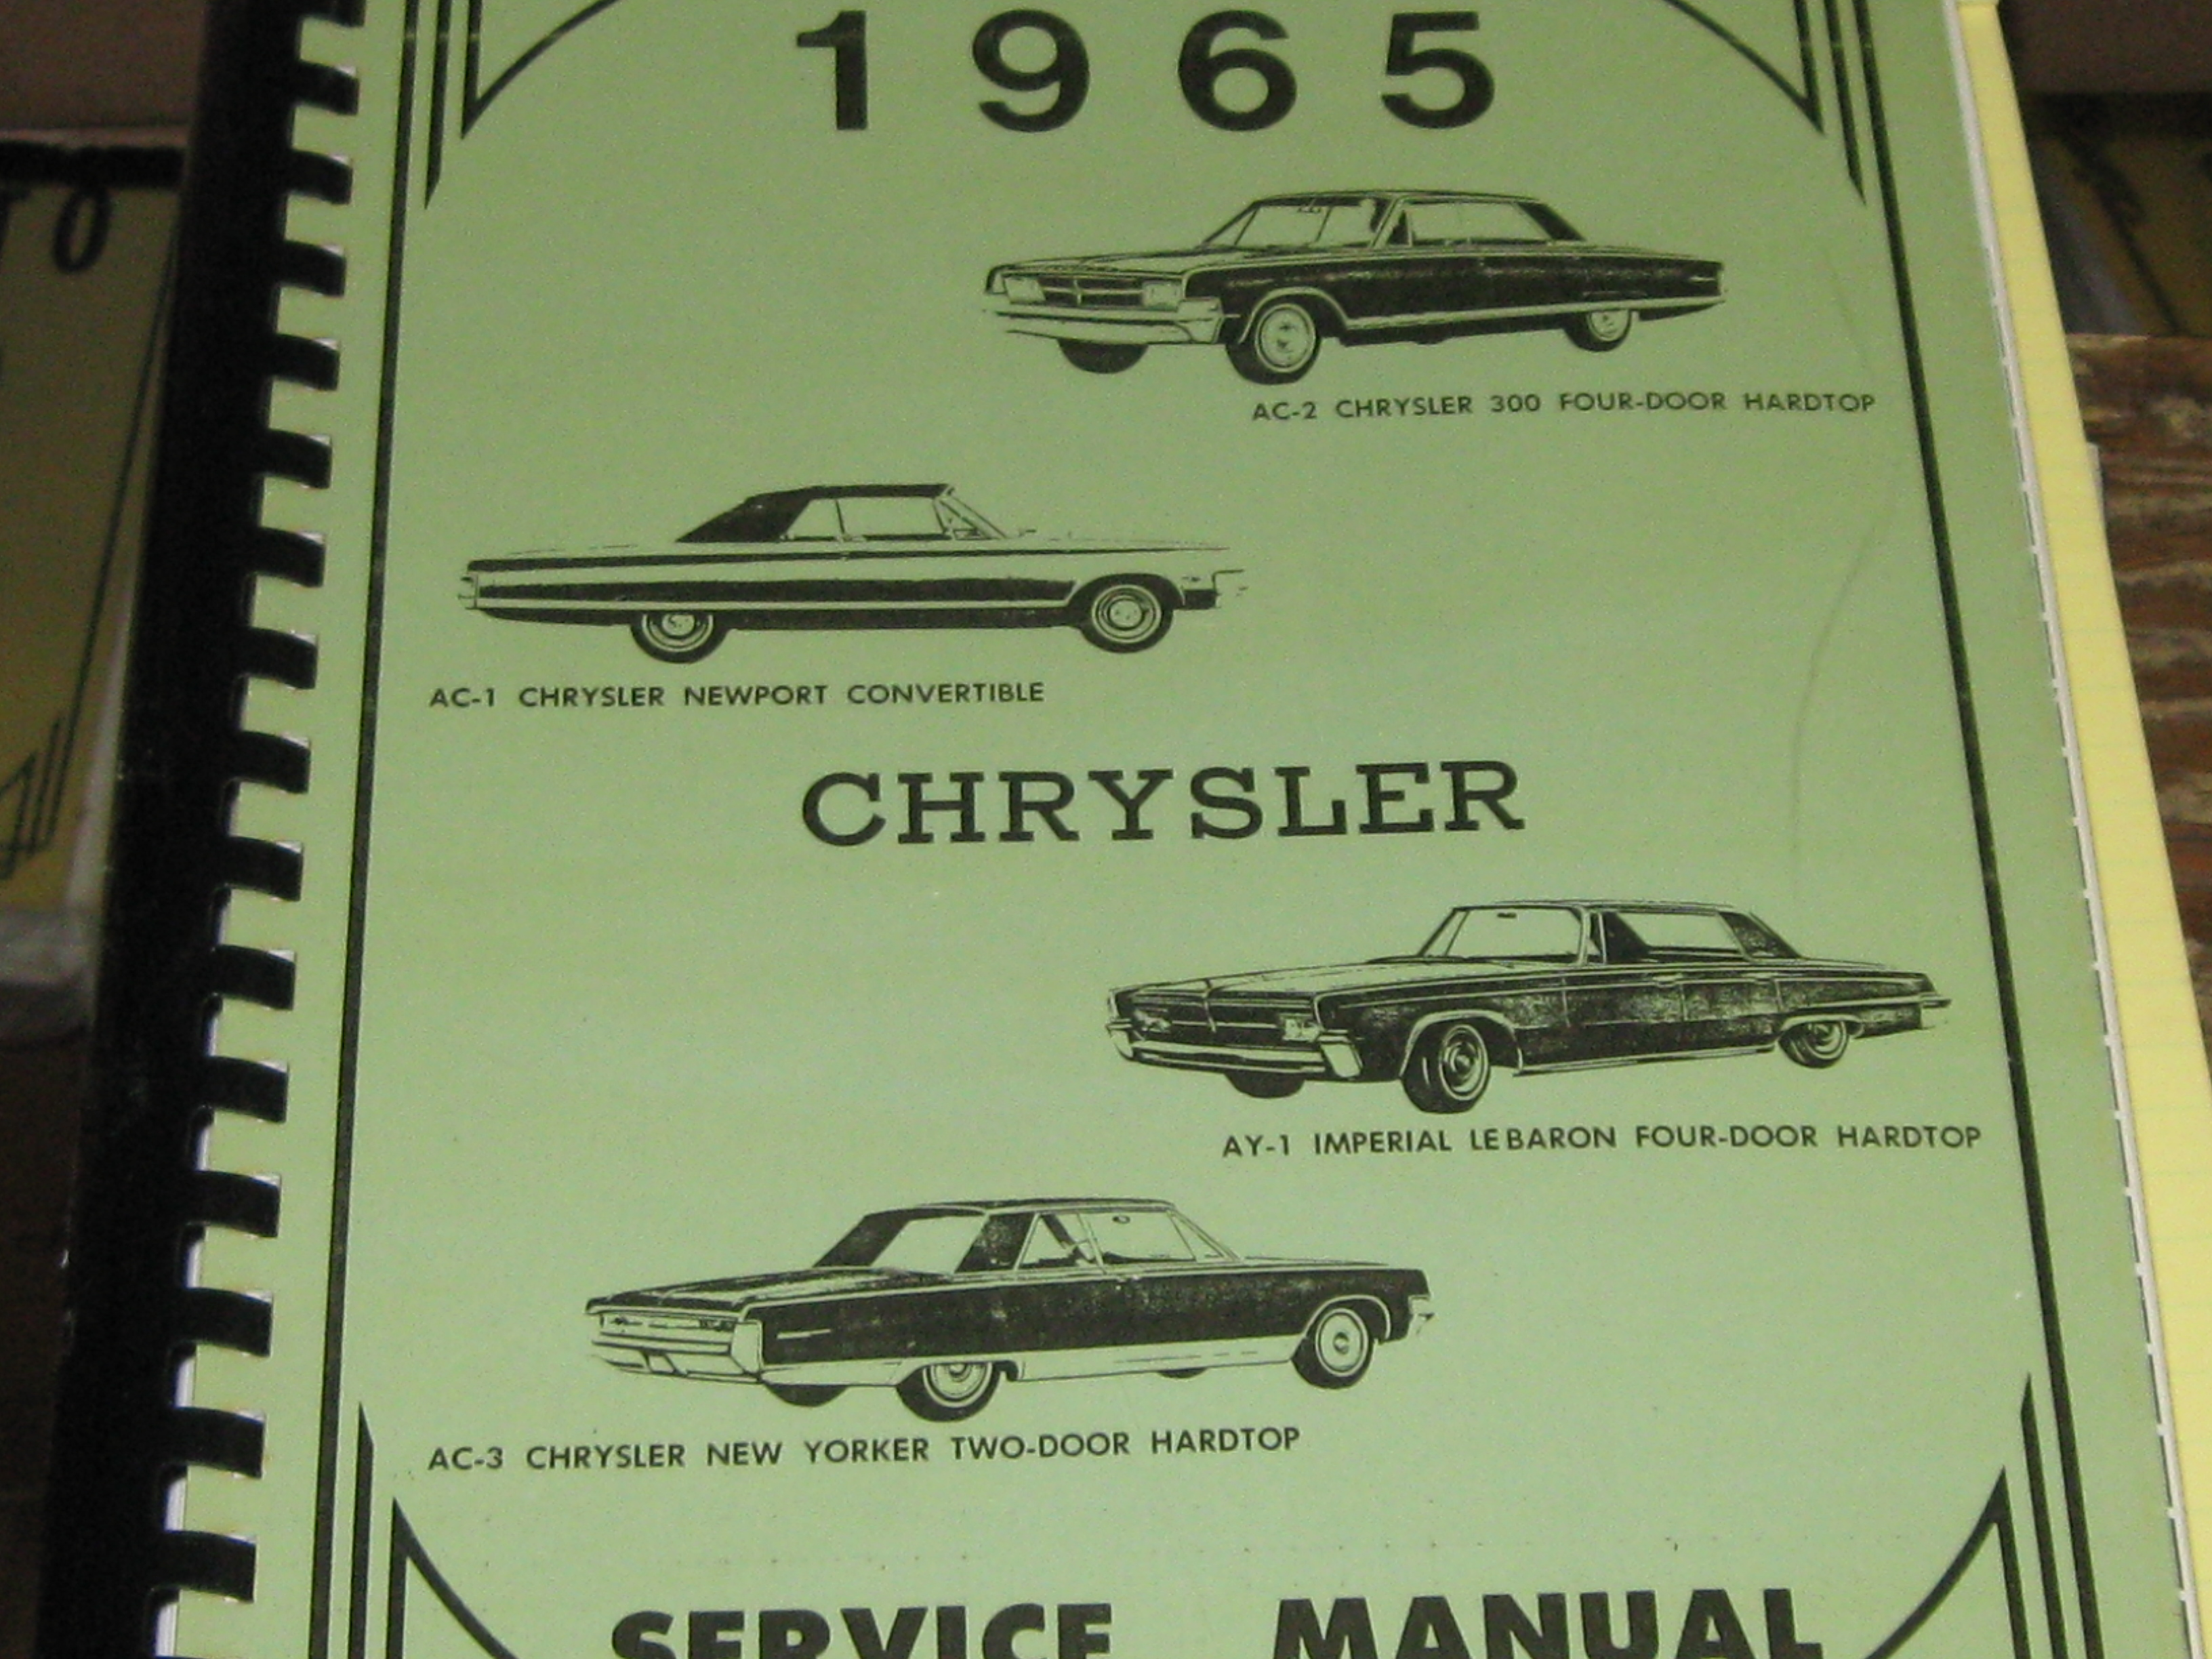 then and now automotive 1965 chrysler shop manual then and now rh then now auto com chrysler shop manuals pdf chrysler 300 shop manual